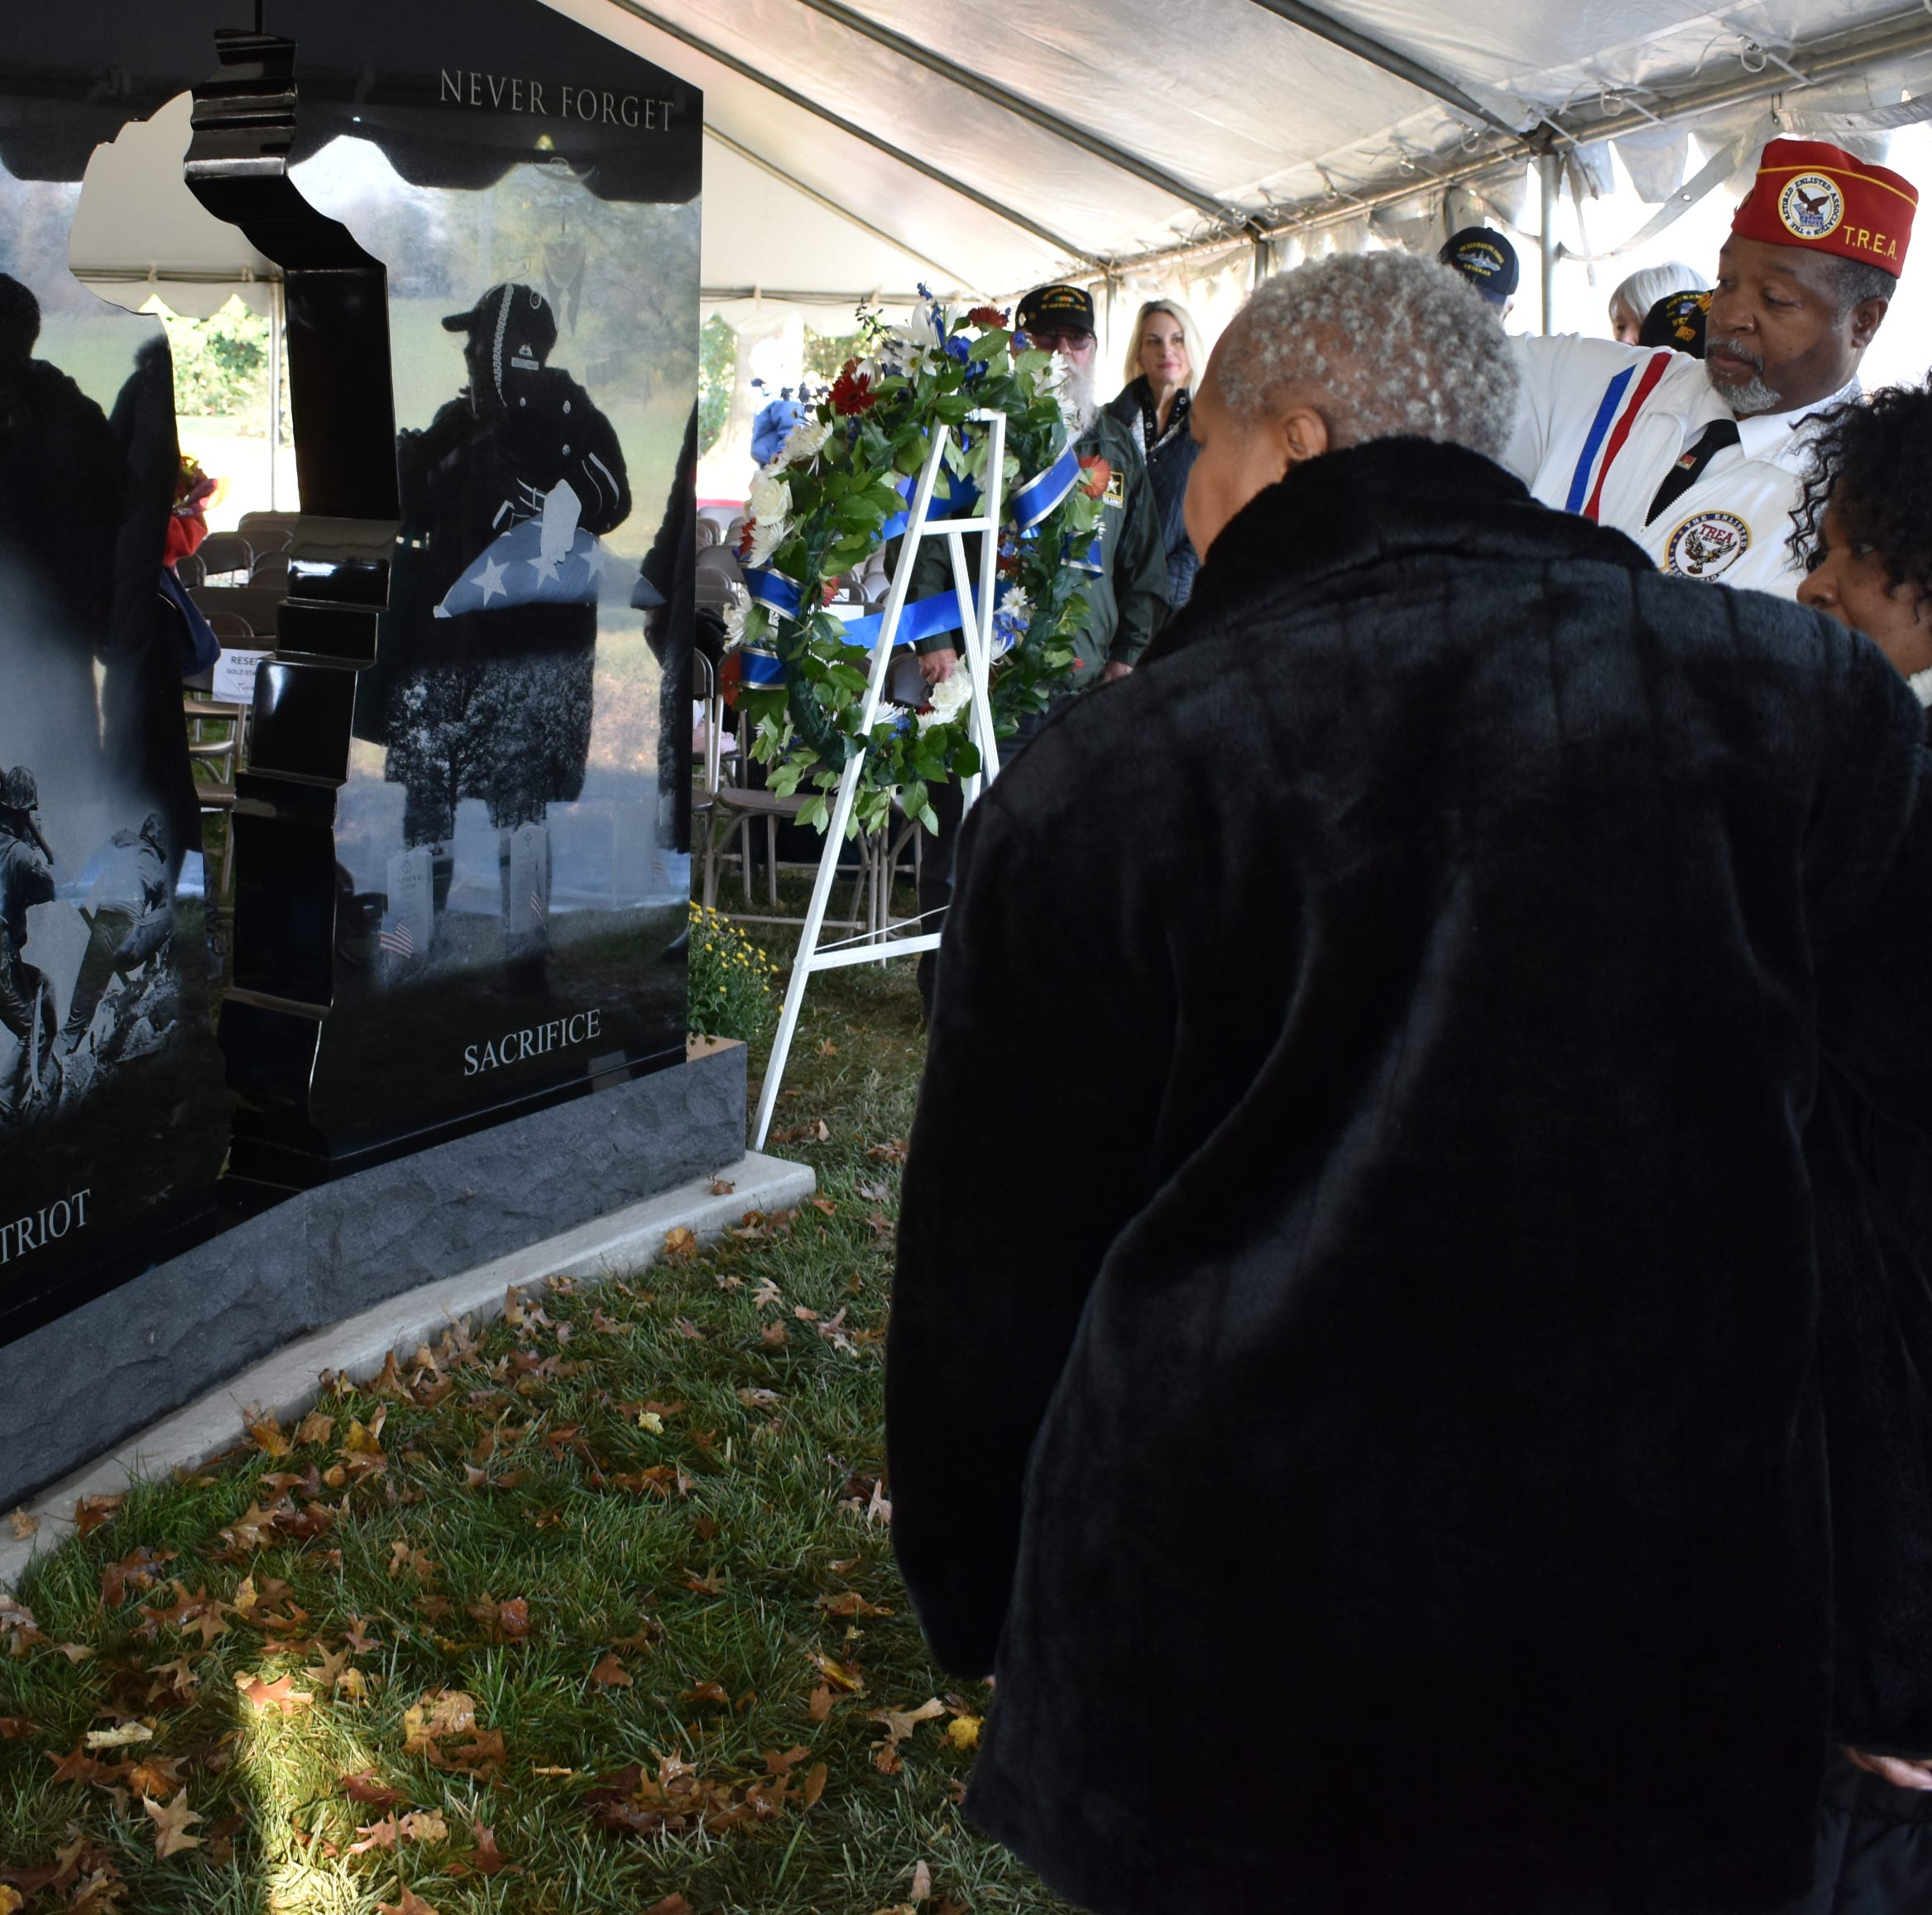 New monument honors Delaware's Gold Star families, whose loved ones died serving the U.S.